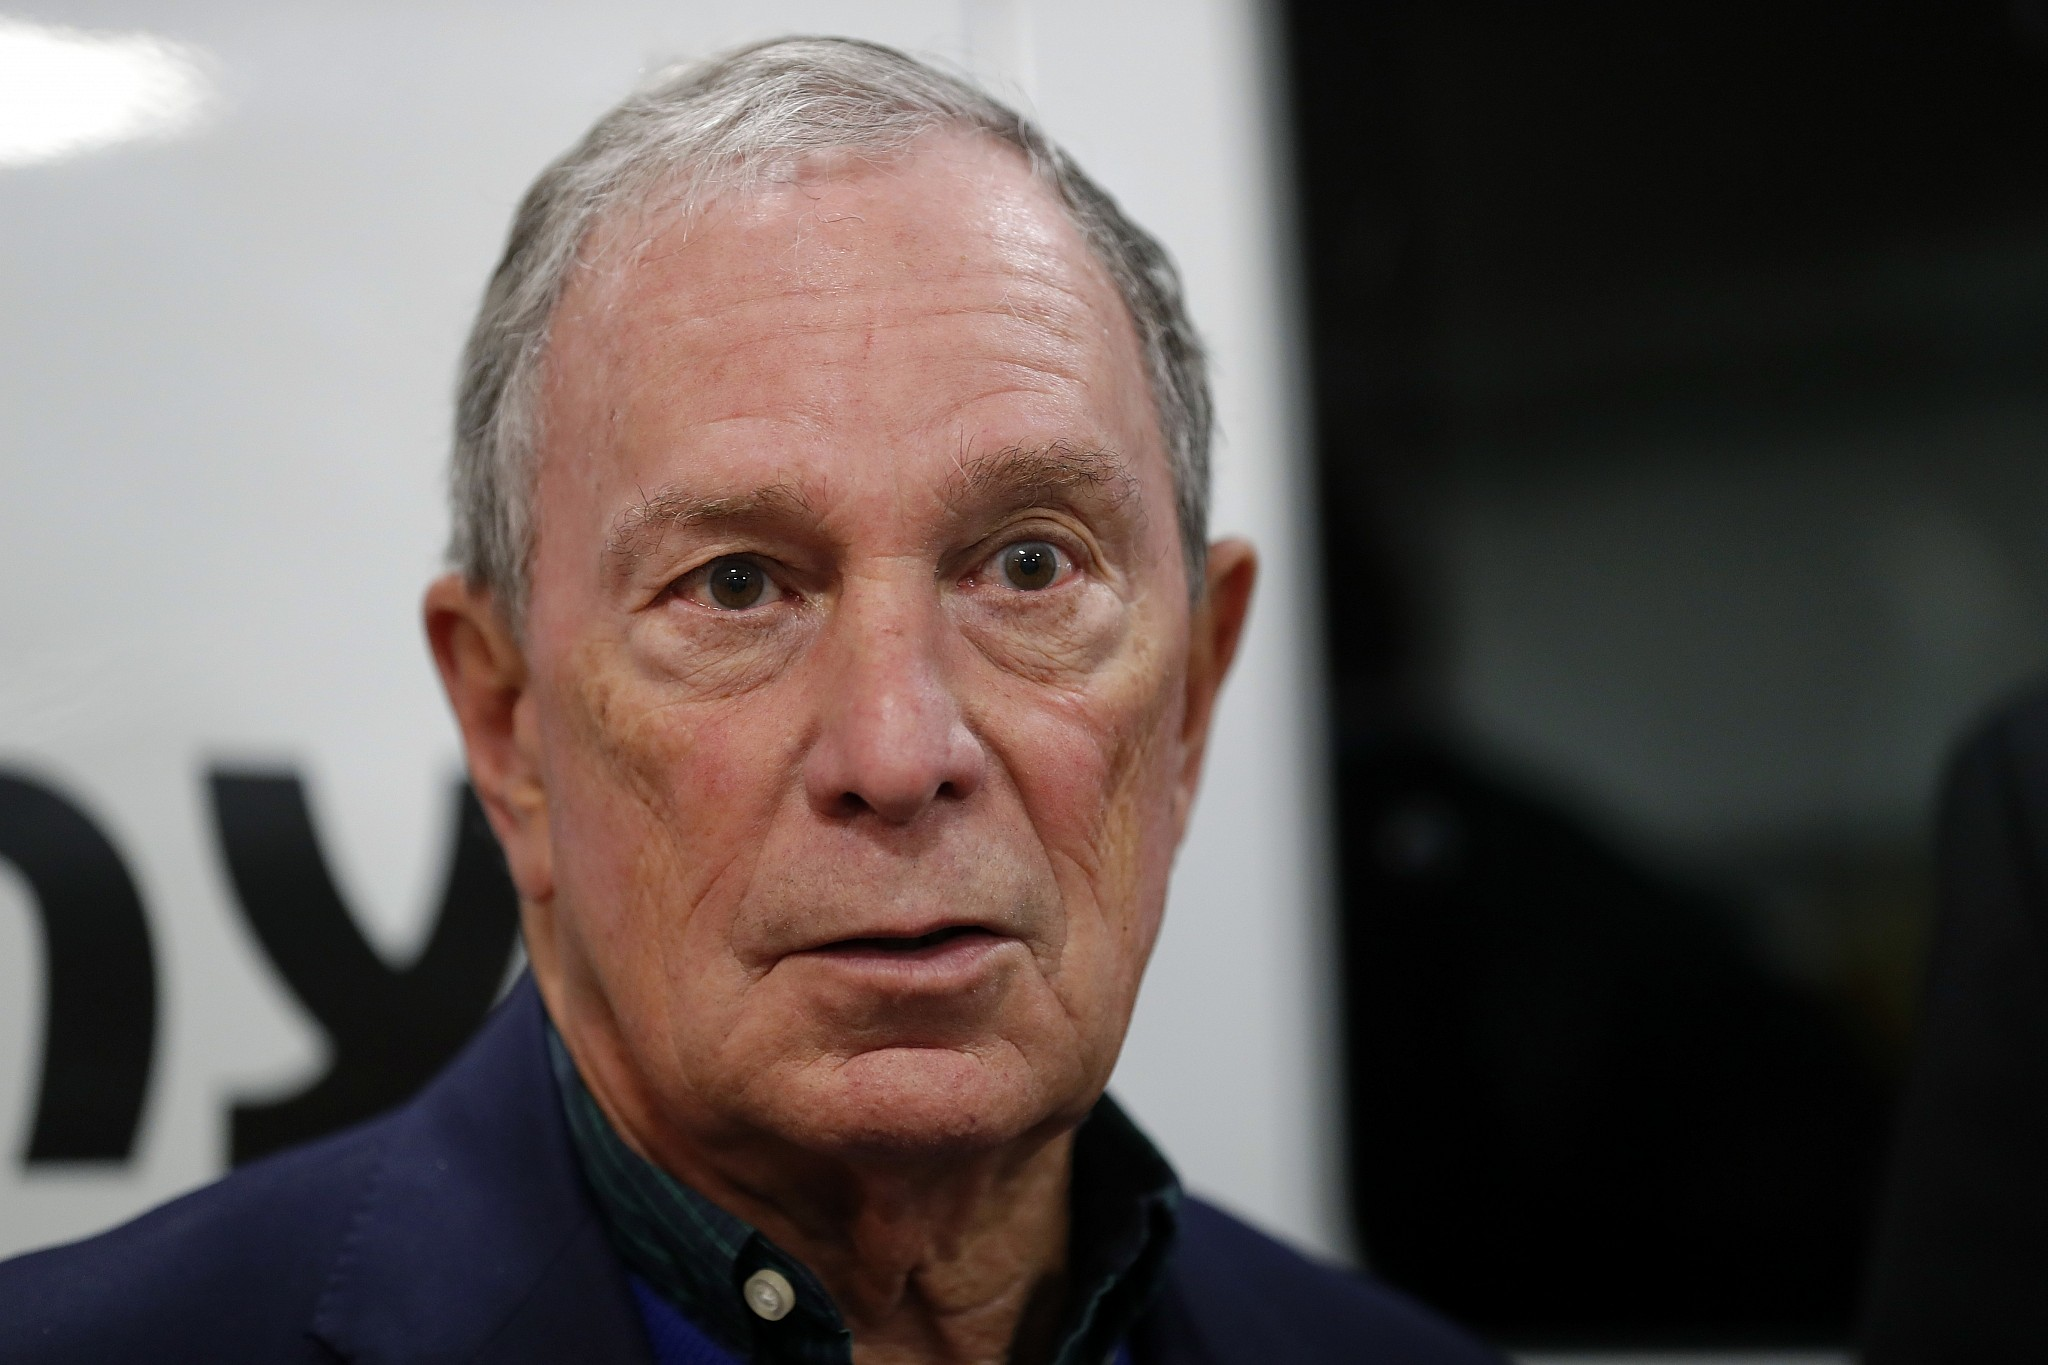 Bloomberg says he'd self-fund White House bid if he runs in 2020